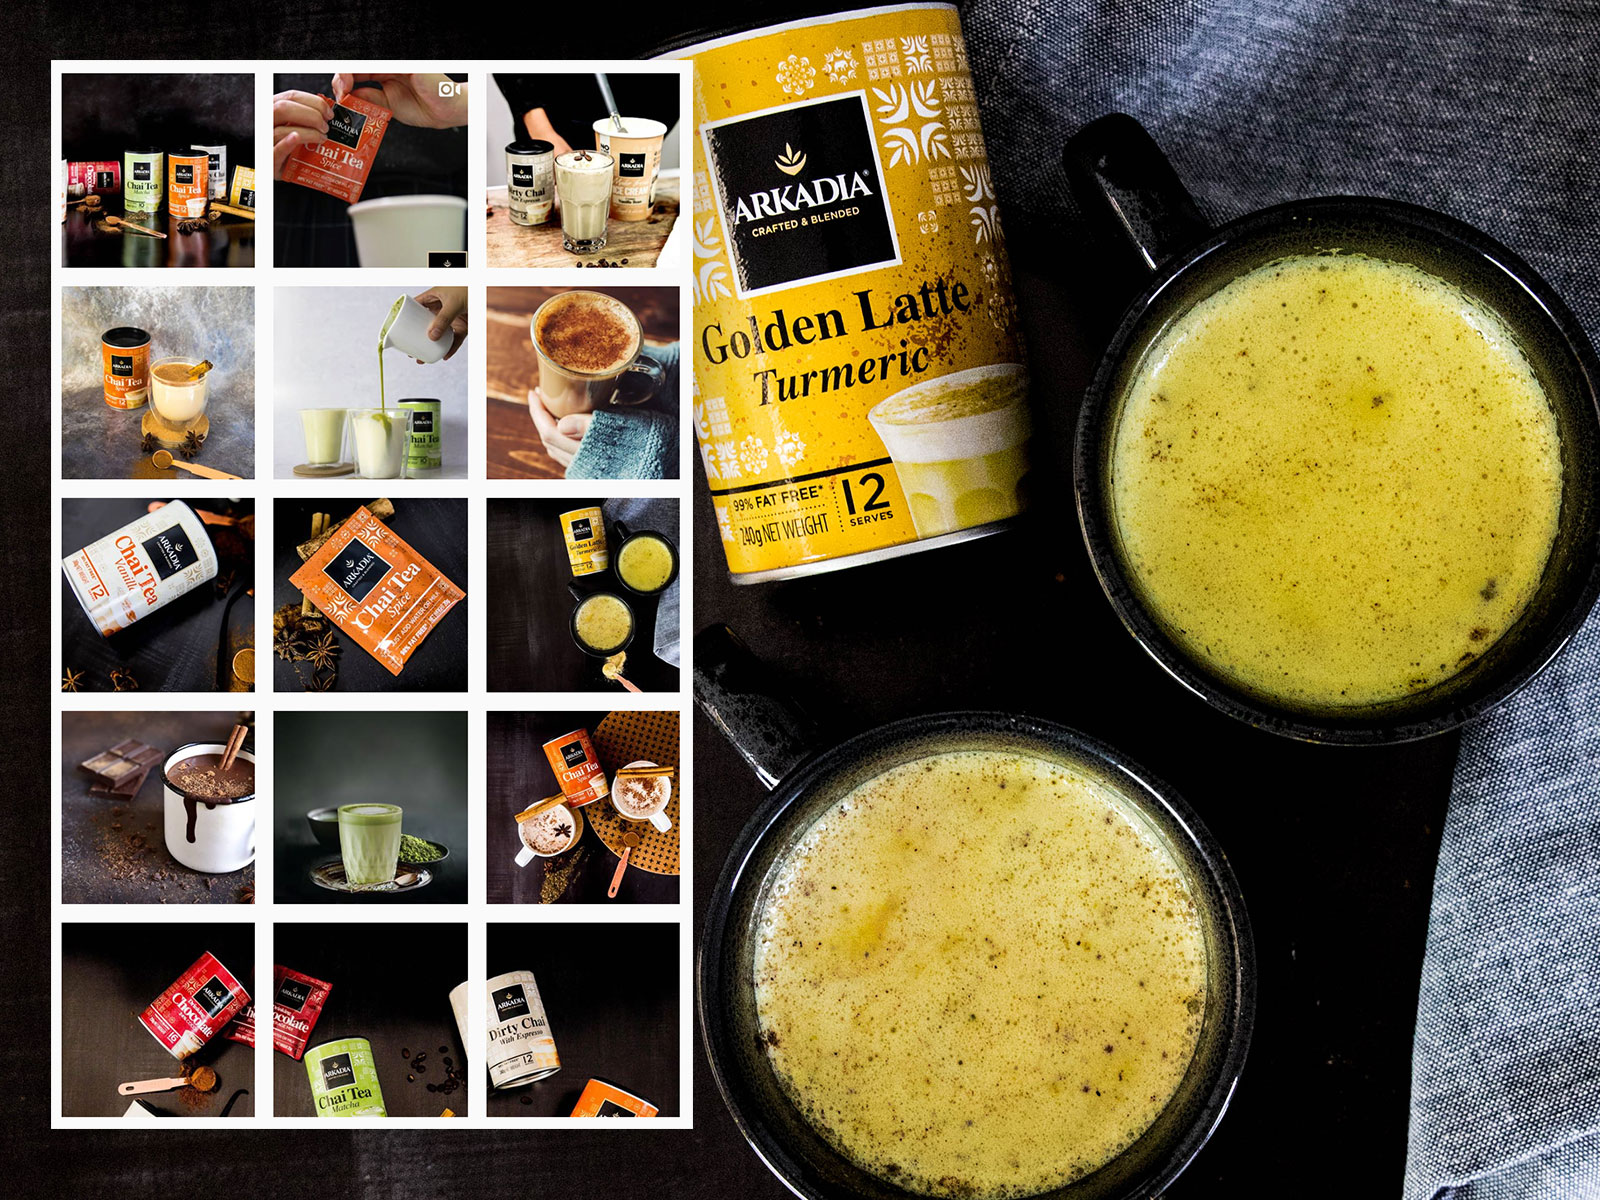 SOCIAL MEDIA & CONTENT: Arkadia Beverages